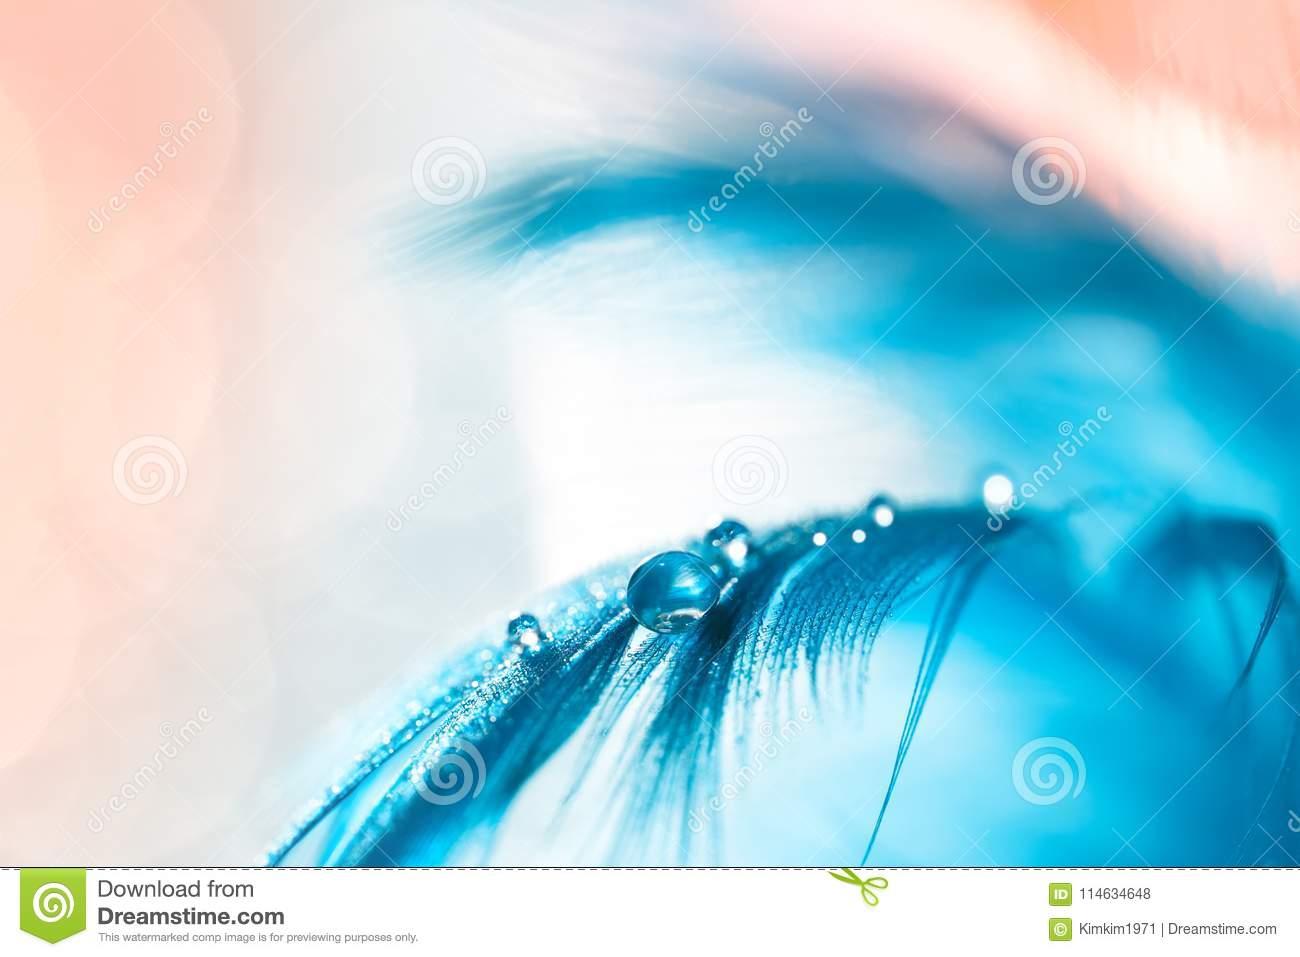 A drop on a blue feather, pastel coloring, pink background. Gentle beautiful macro, artistic image. Selective focus